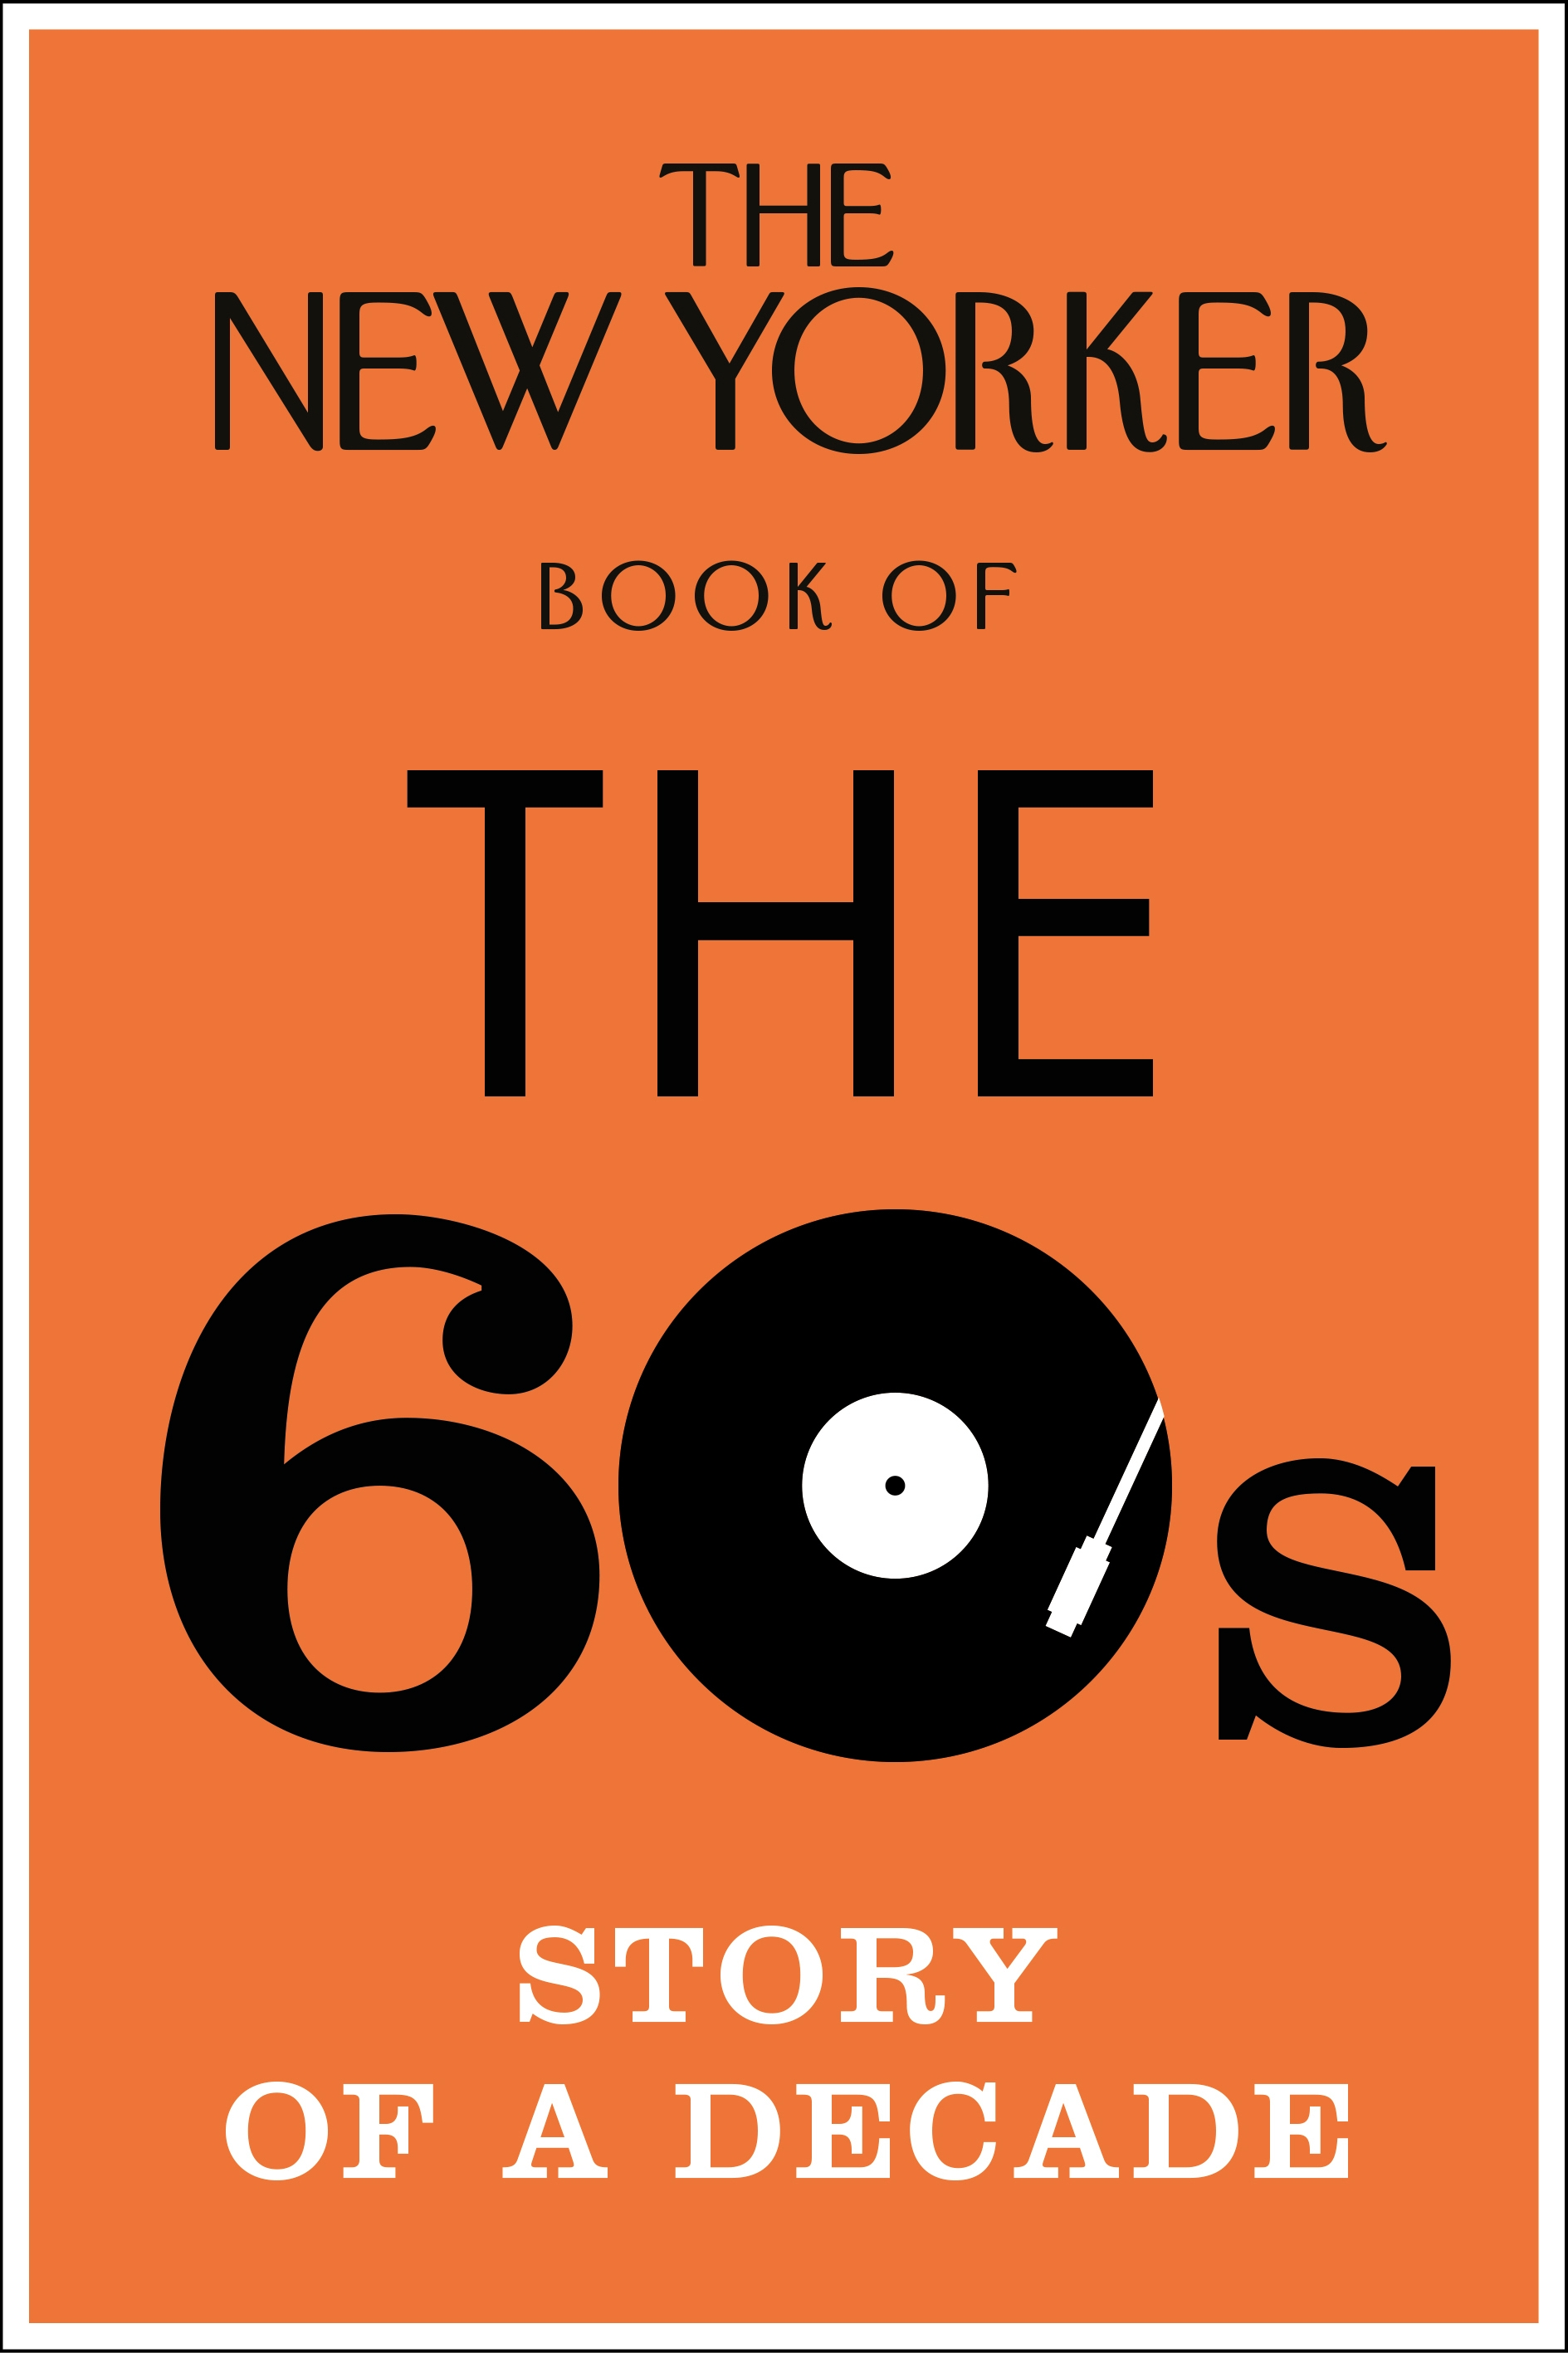 The New Yorker Book of the 60s. Story of a Decade